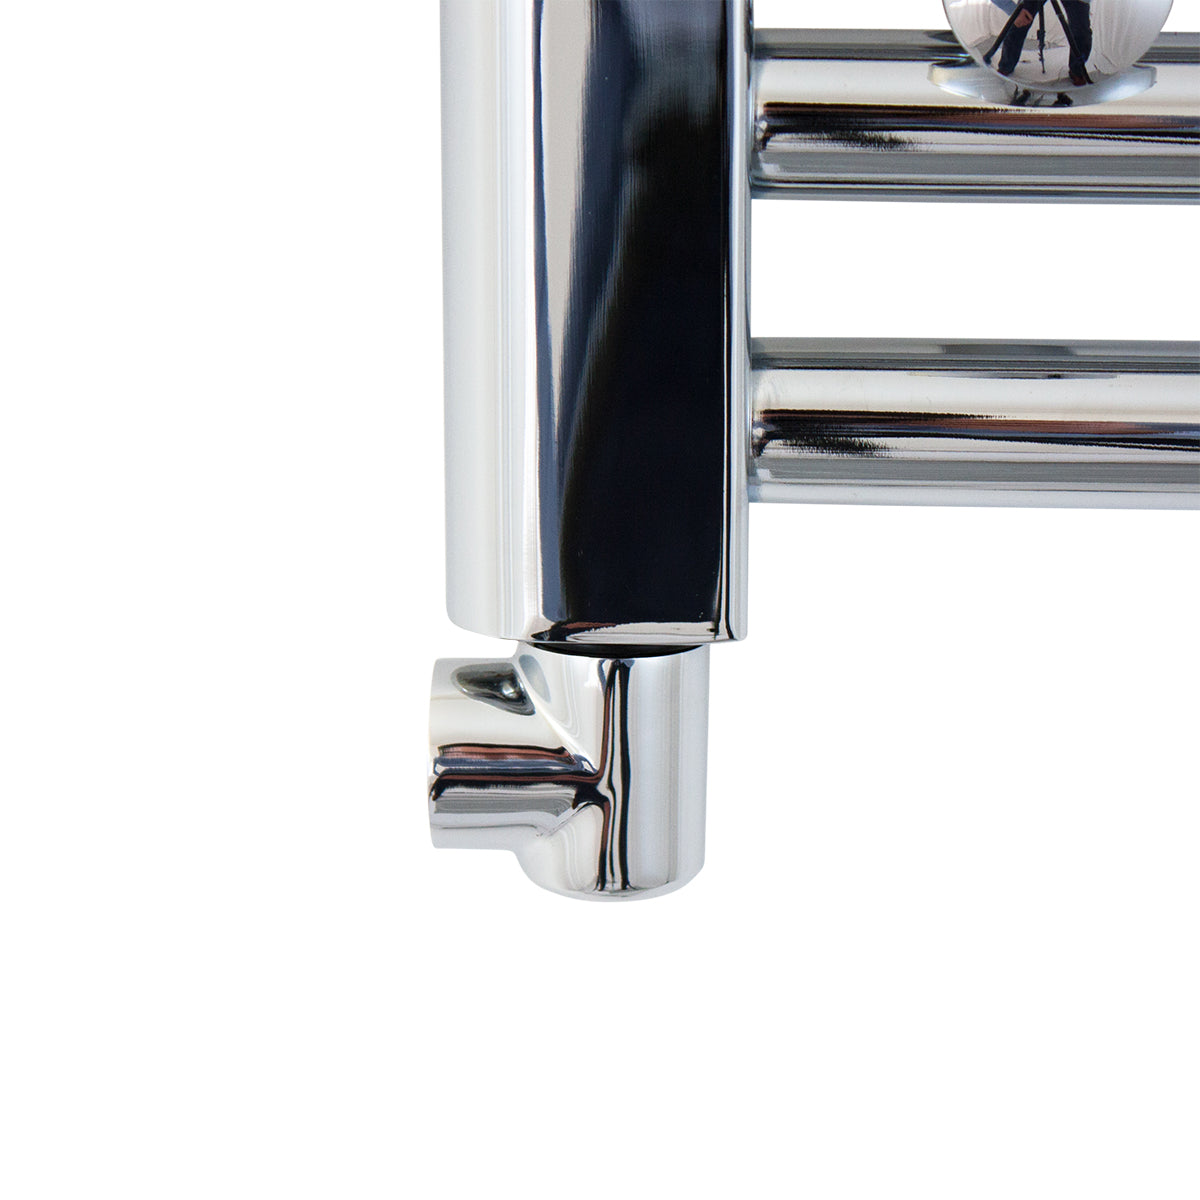 Elbow Chrome Fitting For Towel Rail Radiator in Chrome